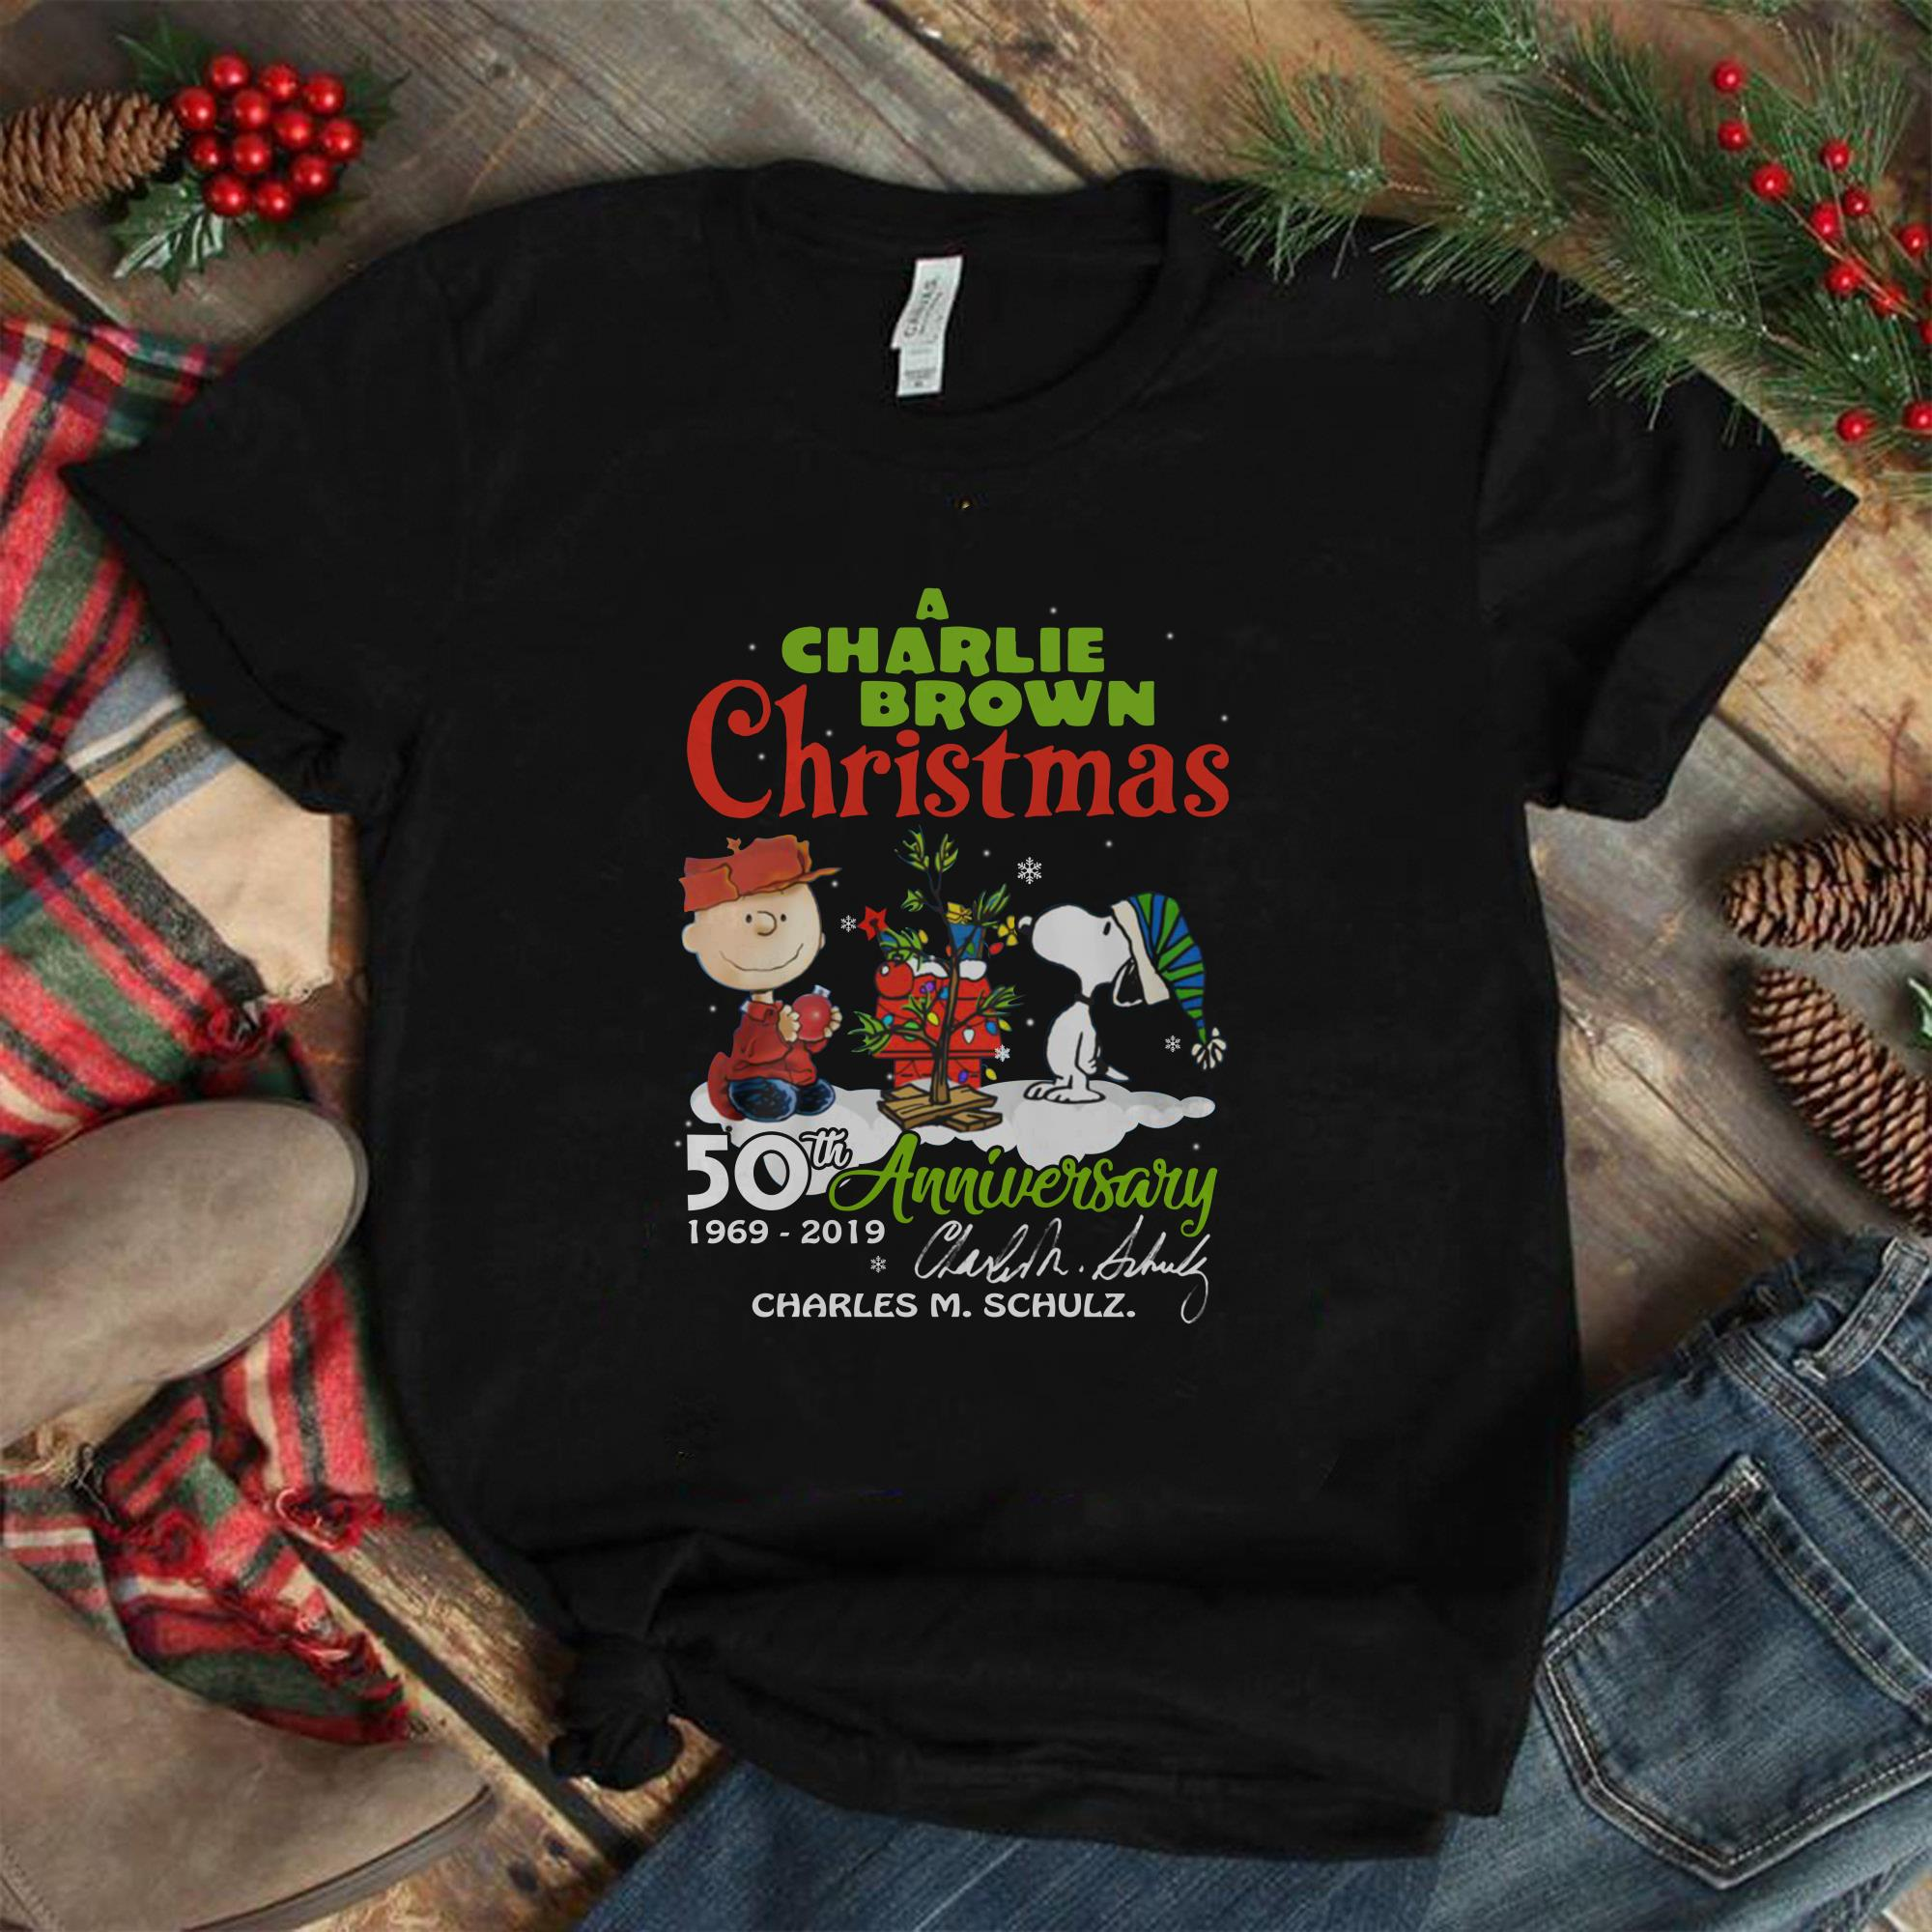 When Is Charlie Brown Christmas On.A Charlie Brown Christmas 50th Anniversary Charles M Schulz Shirt Hoodie Tank Top